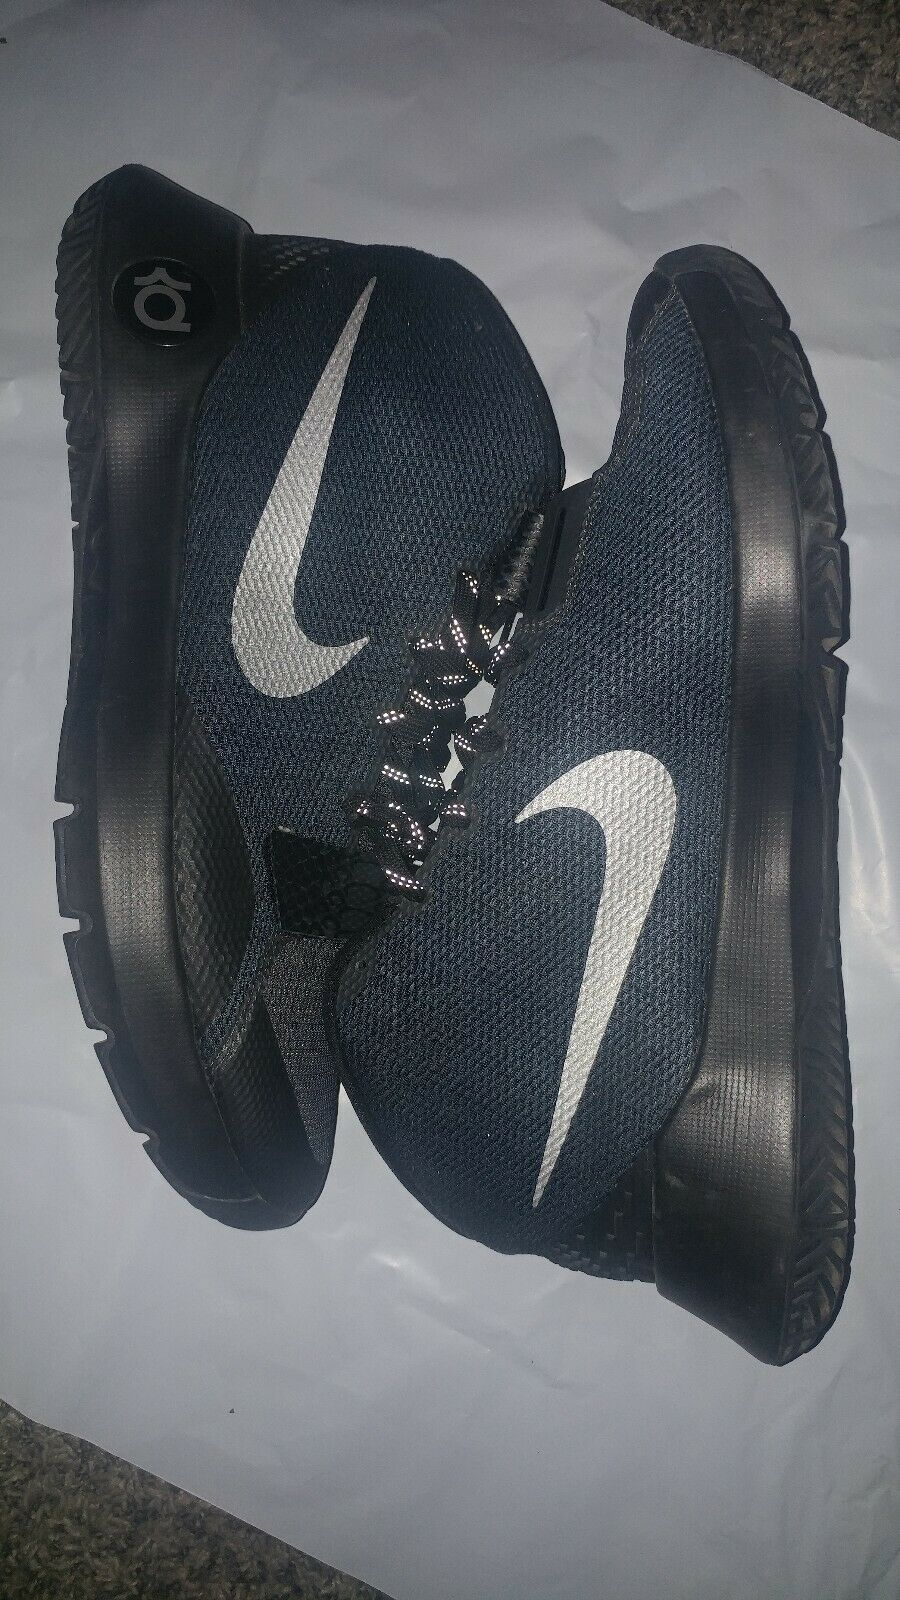 EXCELLENT NIKE KD TREY 5 III BASKETBALL SHOES SIZE 10 (749377 001)